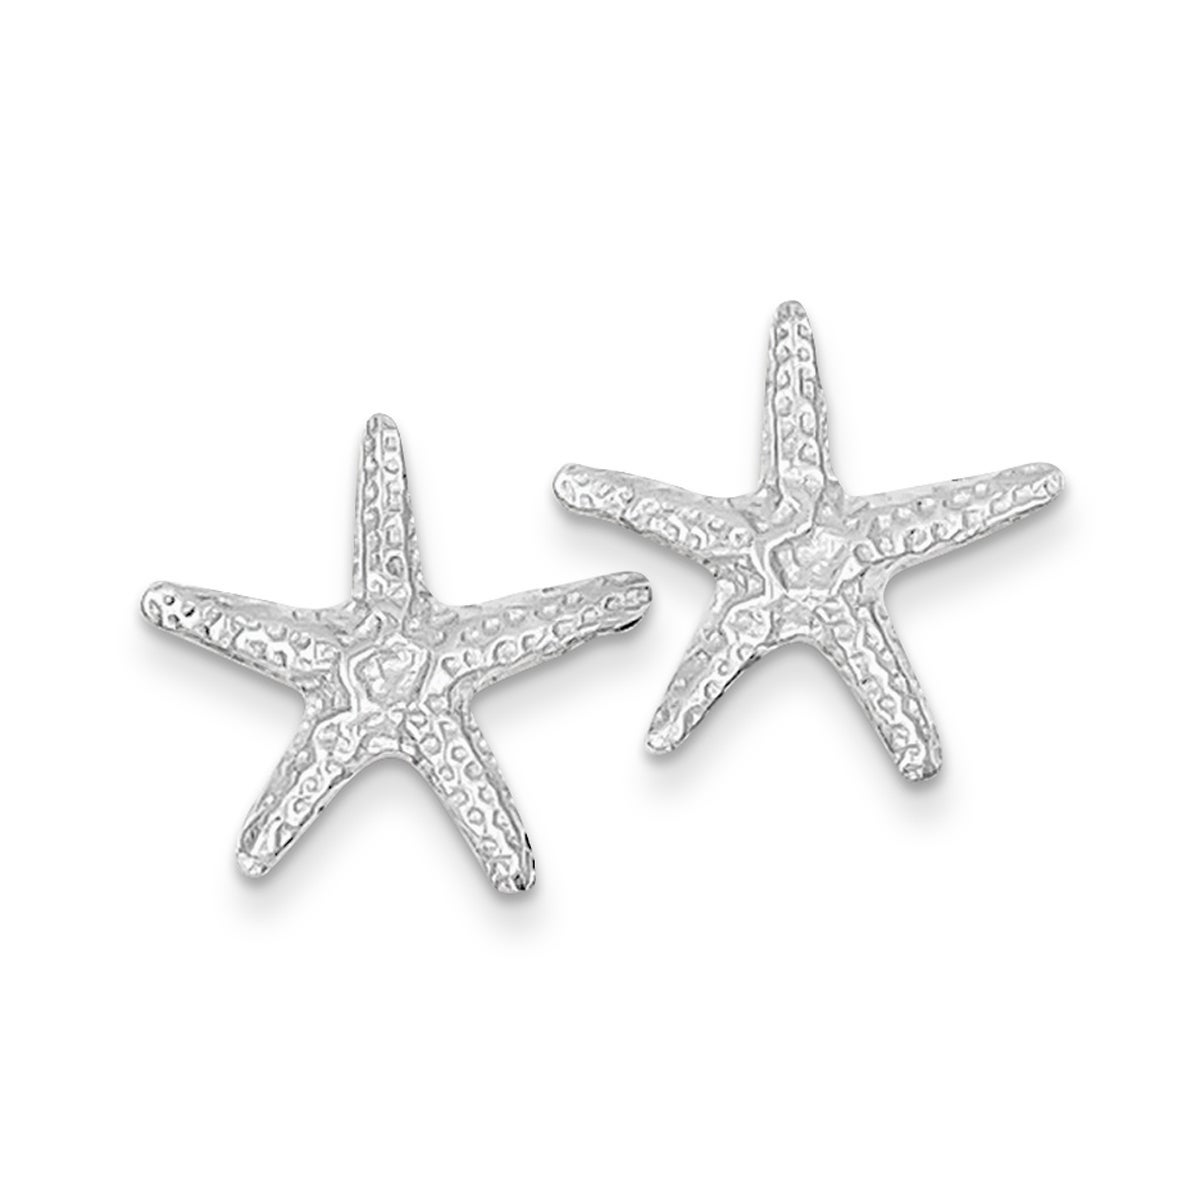 Details About Versil 14 Karat White Gold Starfish Post Earrings